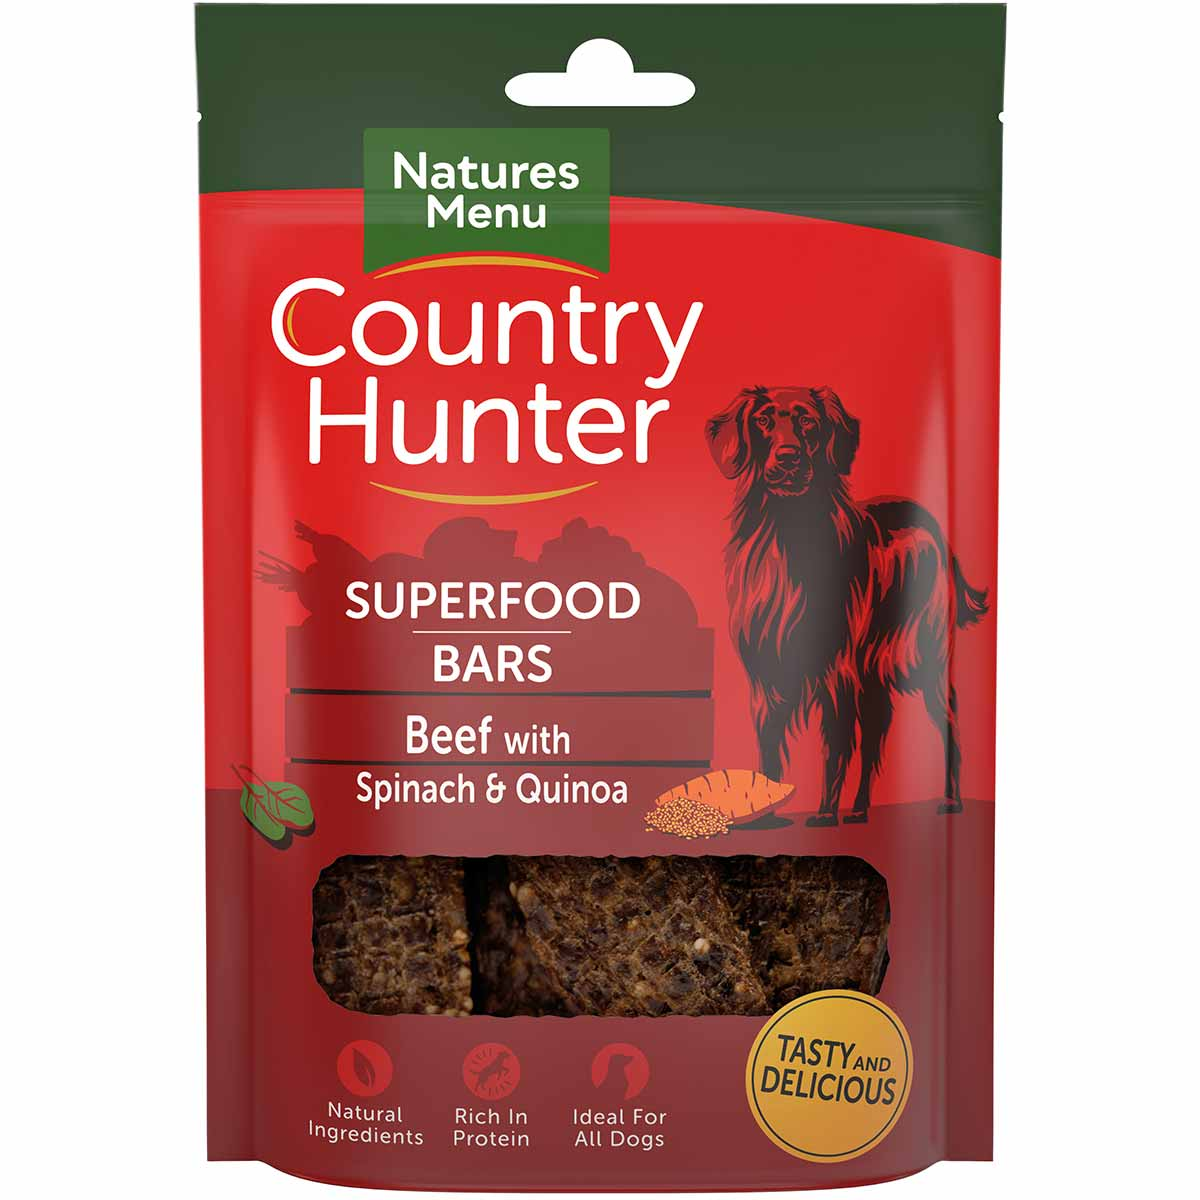 Natures Menu Country Hunter Superfood Bars Beef Dog Treat